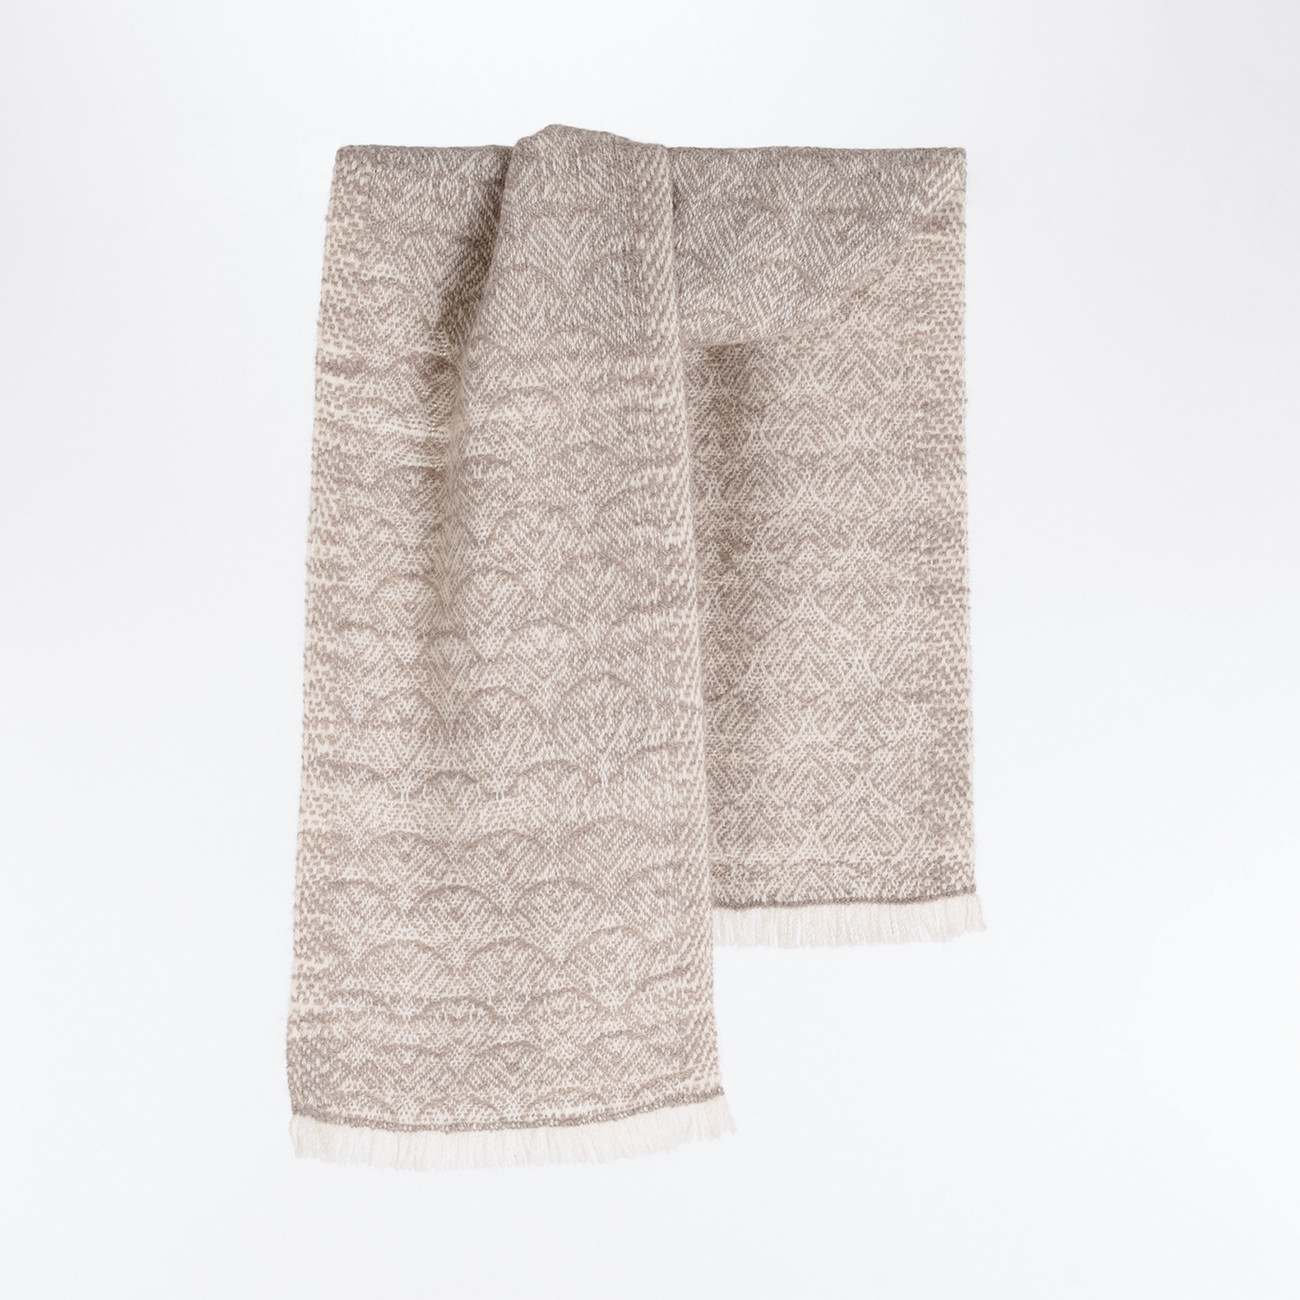 Handwoven Feather Scarf - Natural Light Grey and White Alpaca - 0